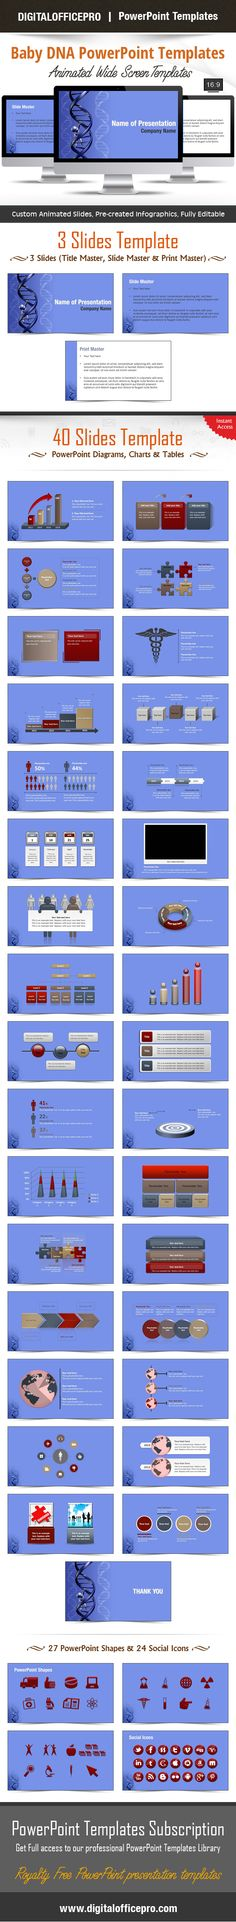 Pin by poweredtemplate on powerpoint charts and diagrams baby dna powerpoint template backgrounds malvernweather Images